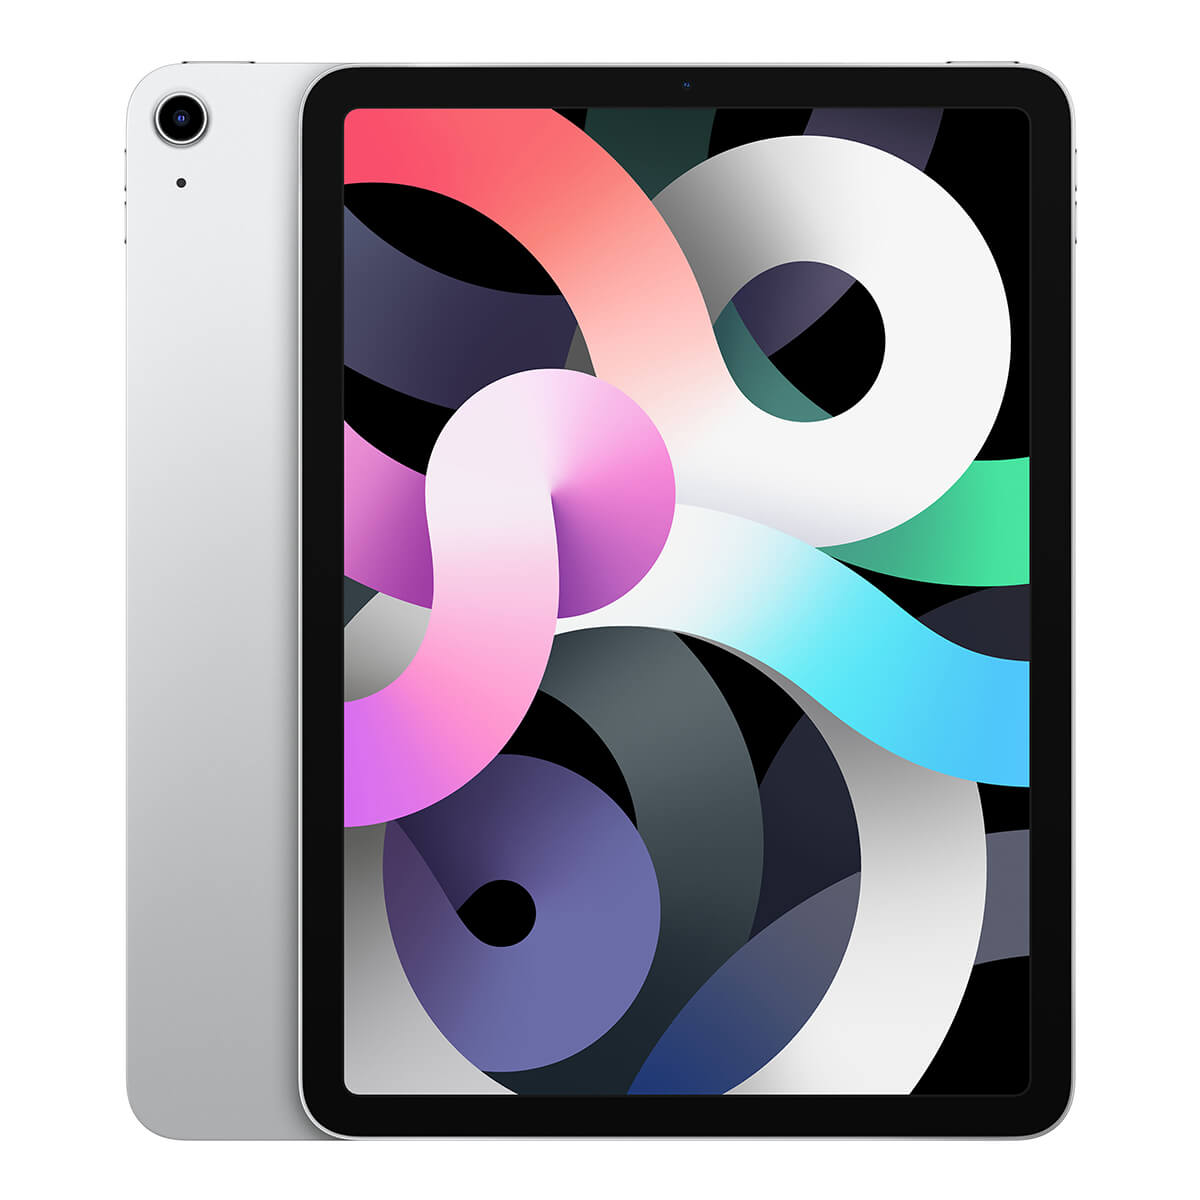 Apple 平板 iPad Air 2020 Wi-Fi (64G)